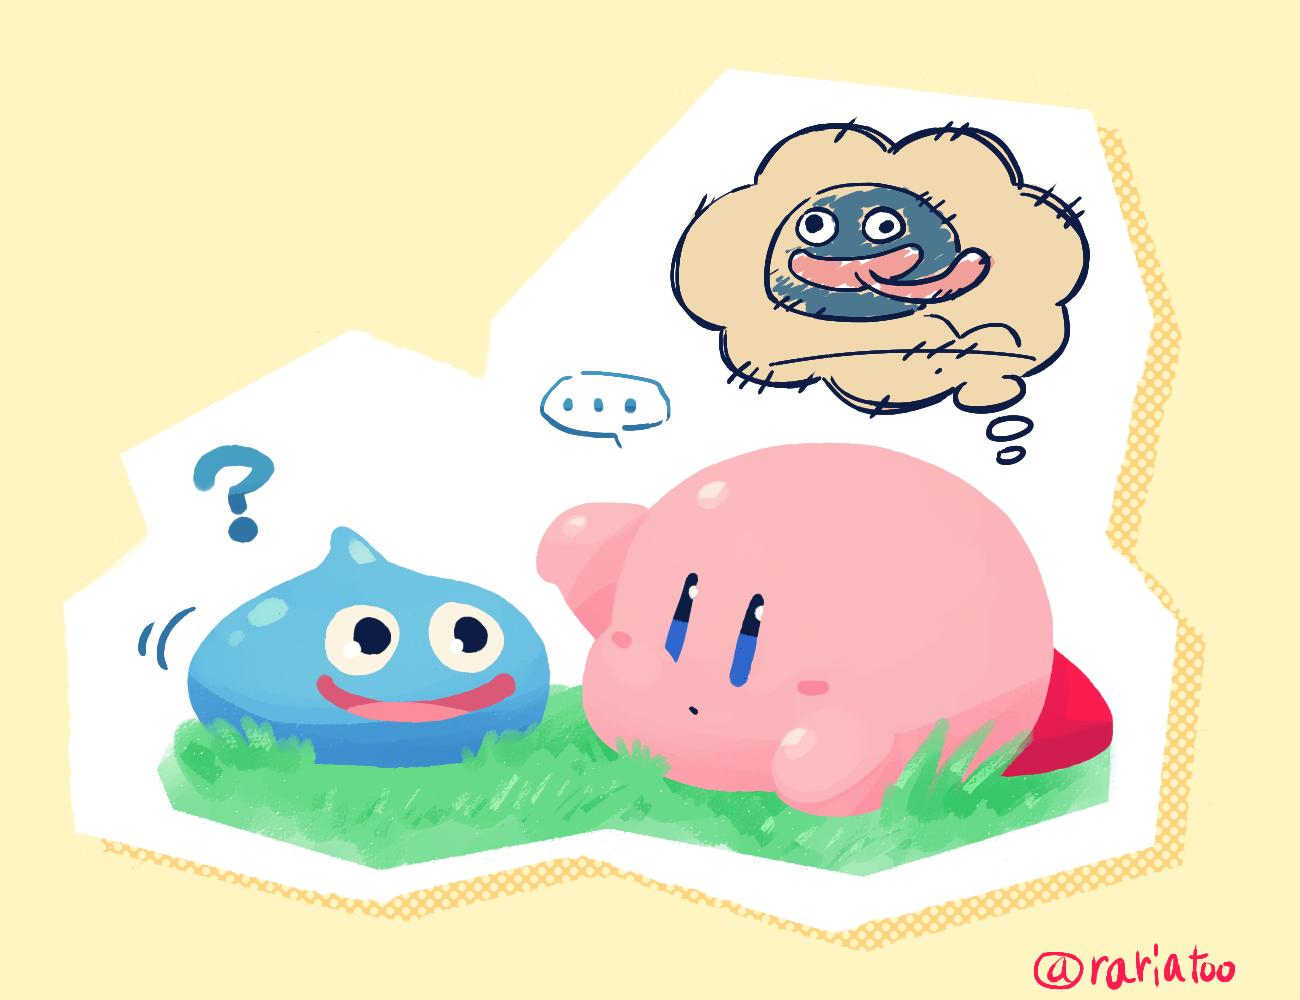 2others ? blob blue_eyes blue_skin blush chibi confused dark_matter_(specie) dragon_quest gooey hal_laboratory_inc. hoshi_no_kirby hoshi_no_kirby_3 kirby kirby's_dream_land_3 kirby_(series) monster nintendo open_mouth pink_puff_ball rariatto_(ganguri) slime slime_(dragon_quest) smile sora_(company) square_enix super_smash_bros. super_smash_bros._ultimate tongue tongue_out